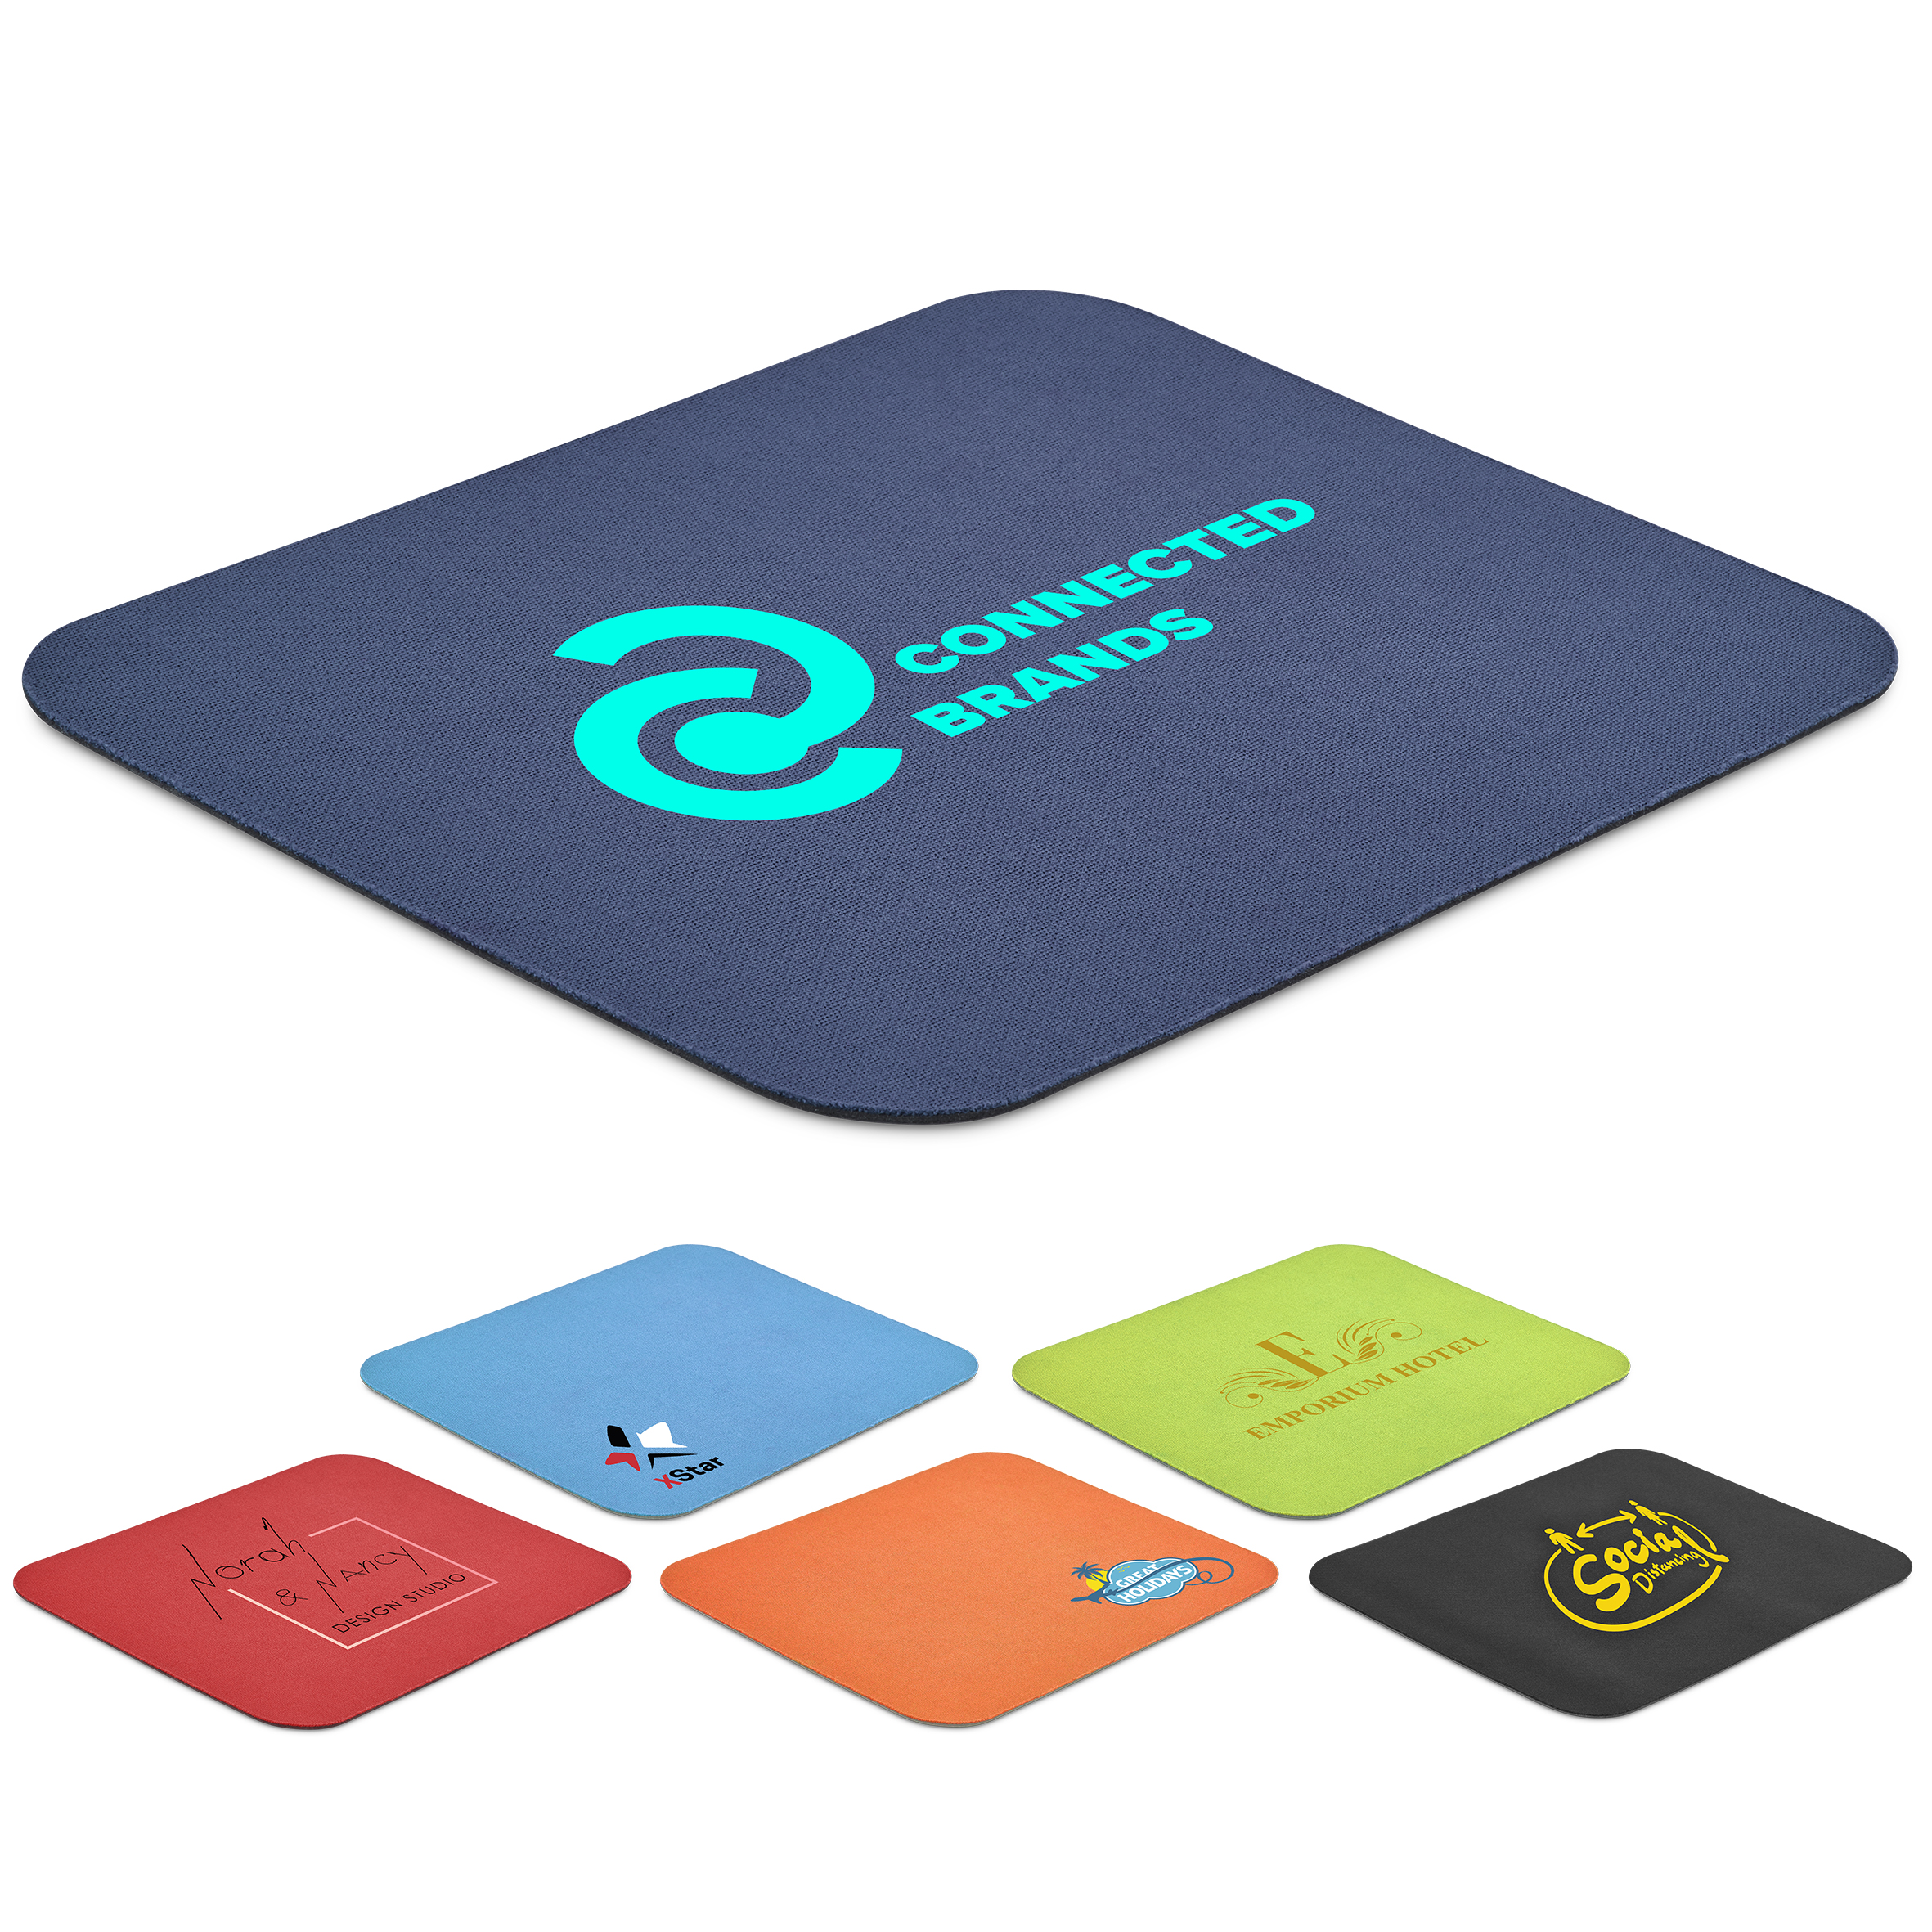 Product: Omega Mouse Pad